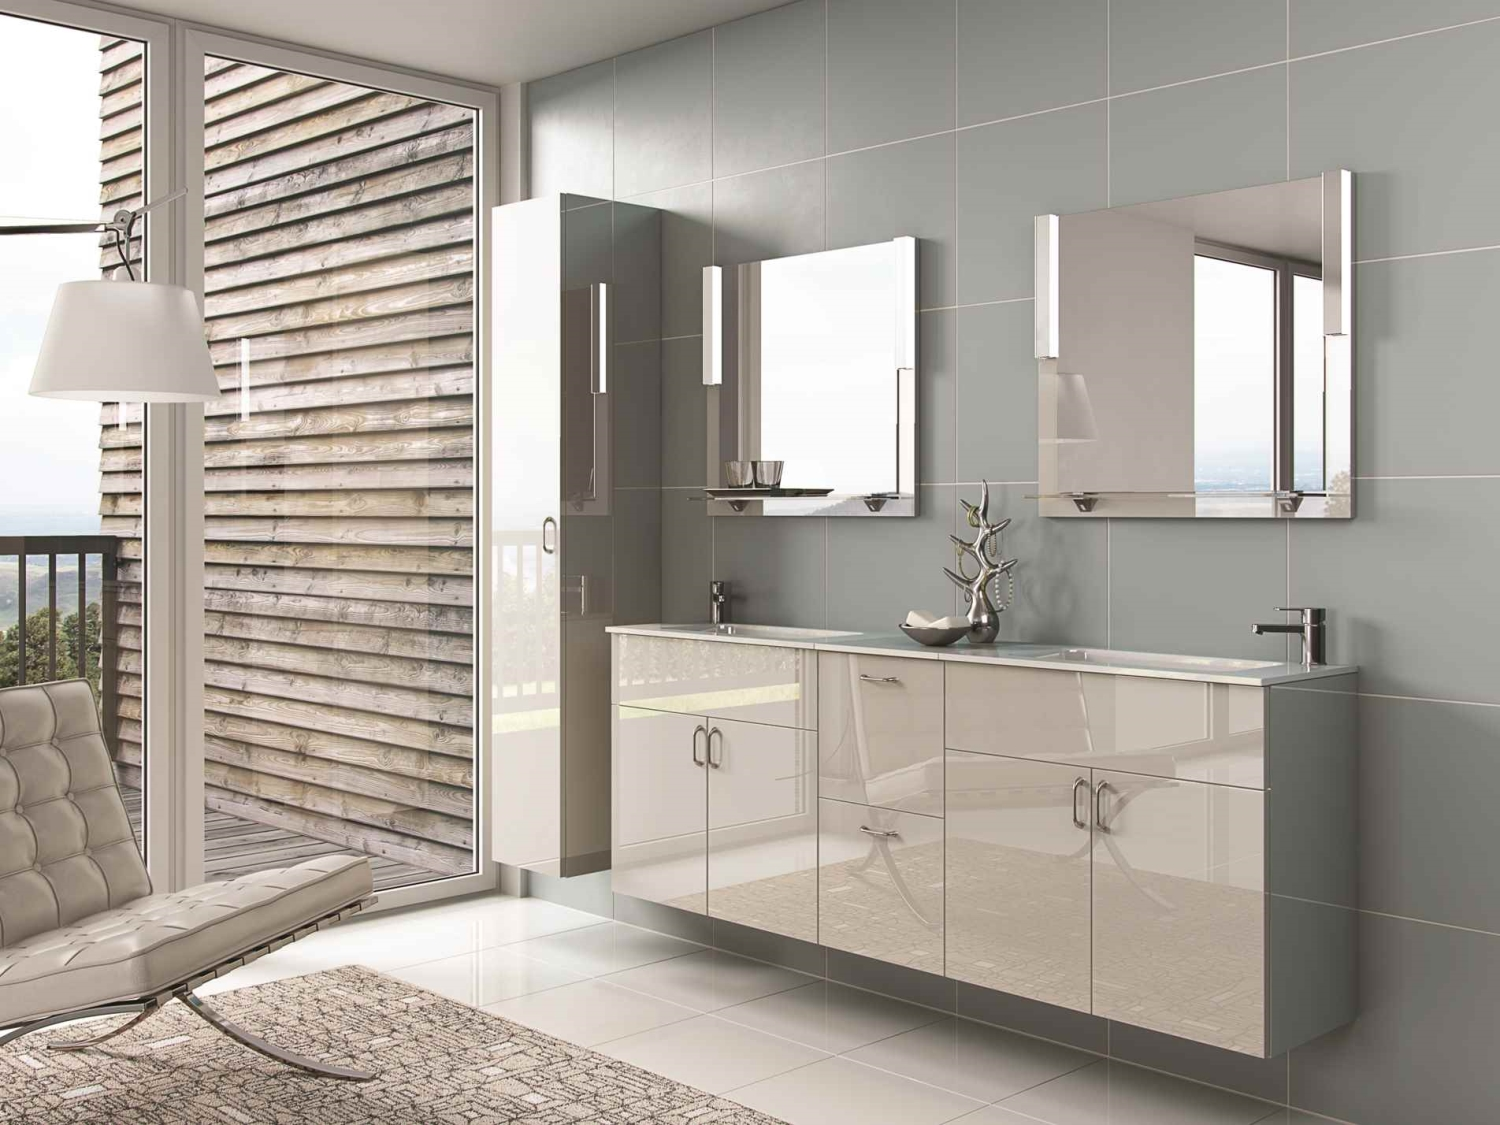 Bathrooms Dundee - quality bathrooms at great prices! - Designers